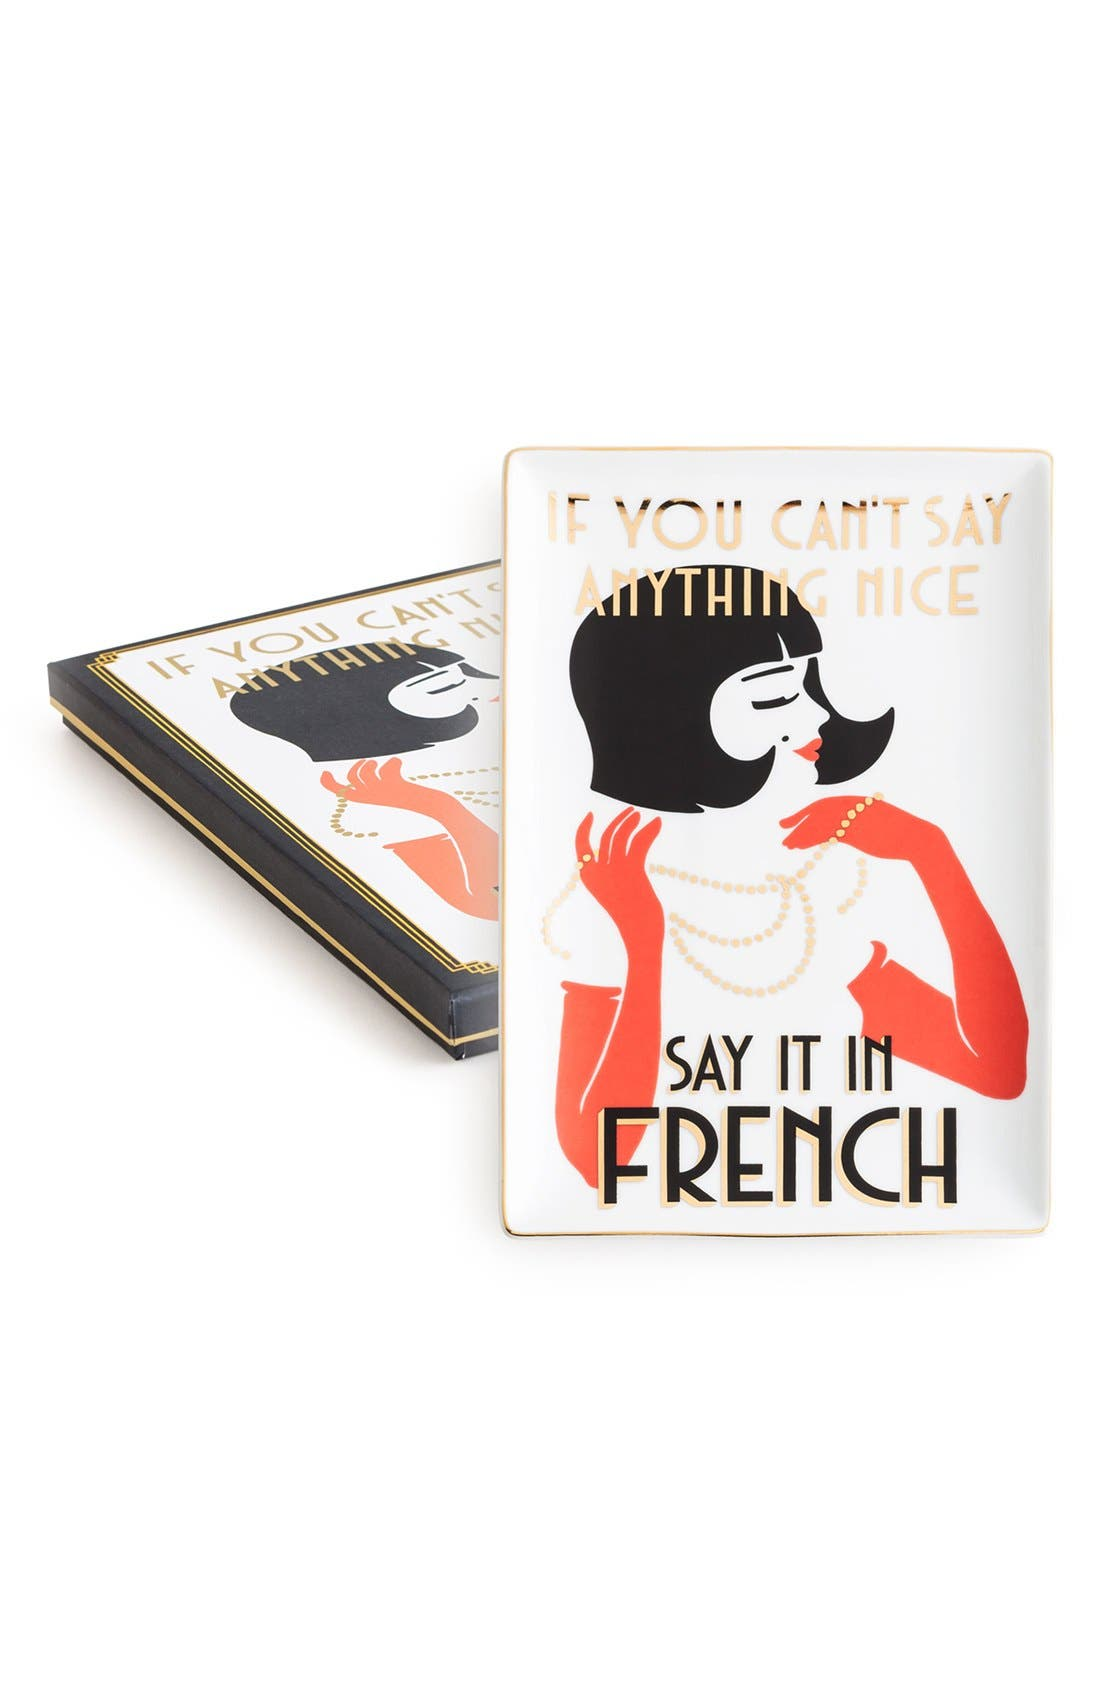 Alternate Image 1 Selected - Rosanna 'If You Can't Say Anything Nice, Say It in French' Porcelain Tray